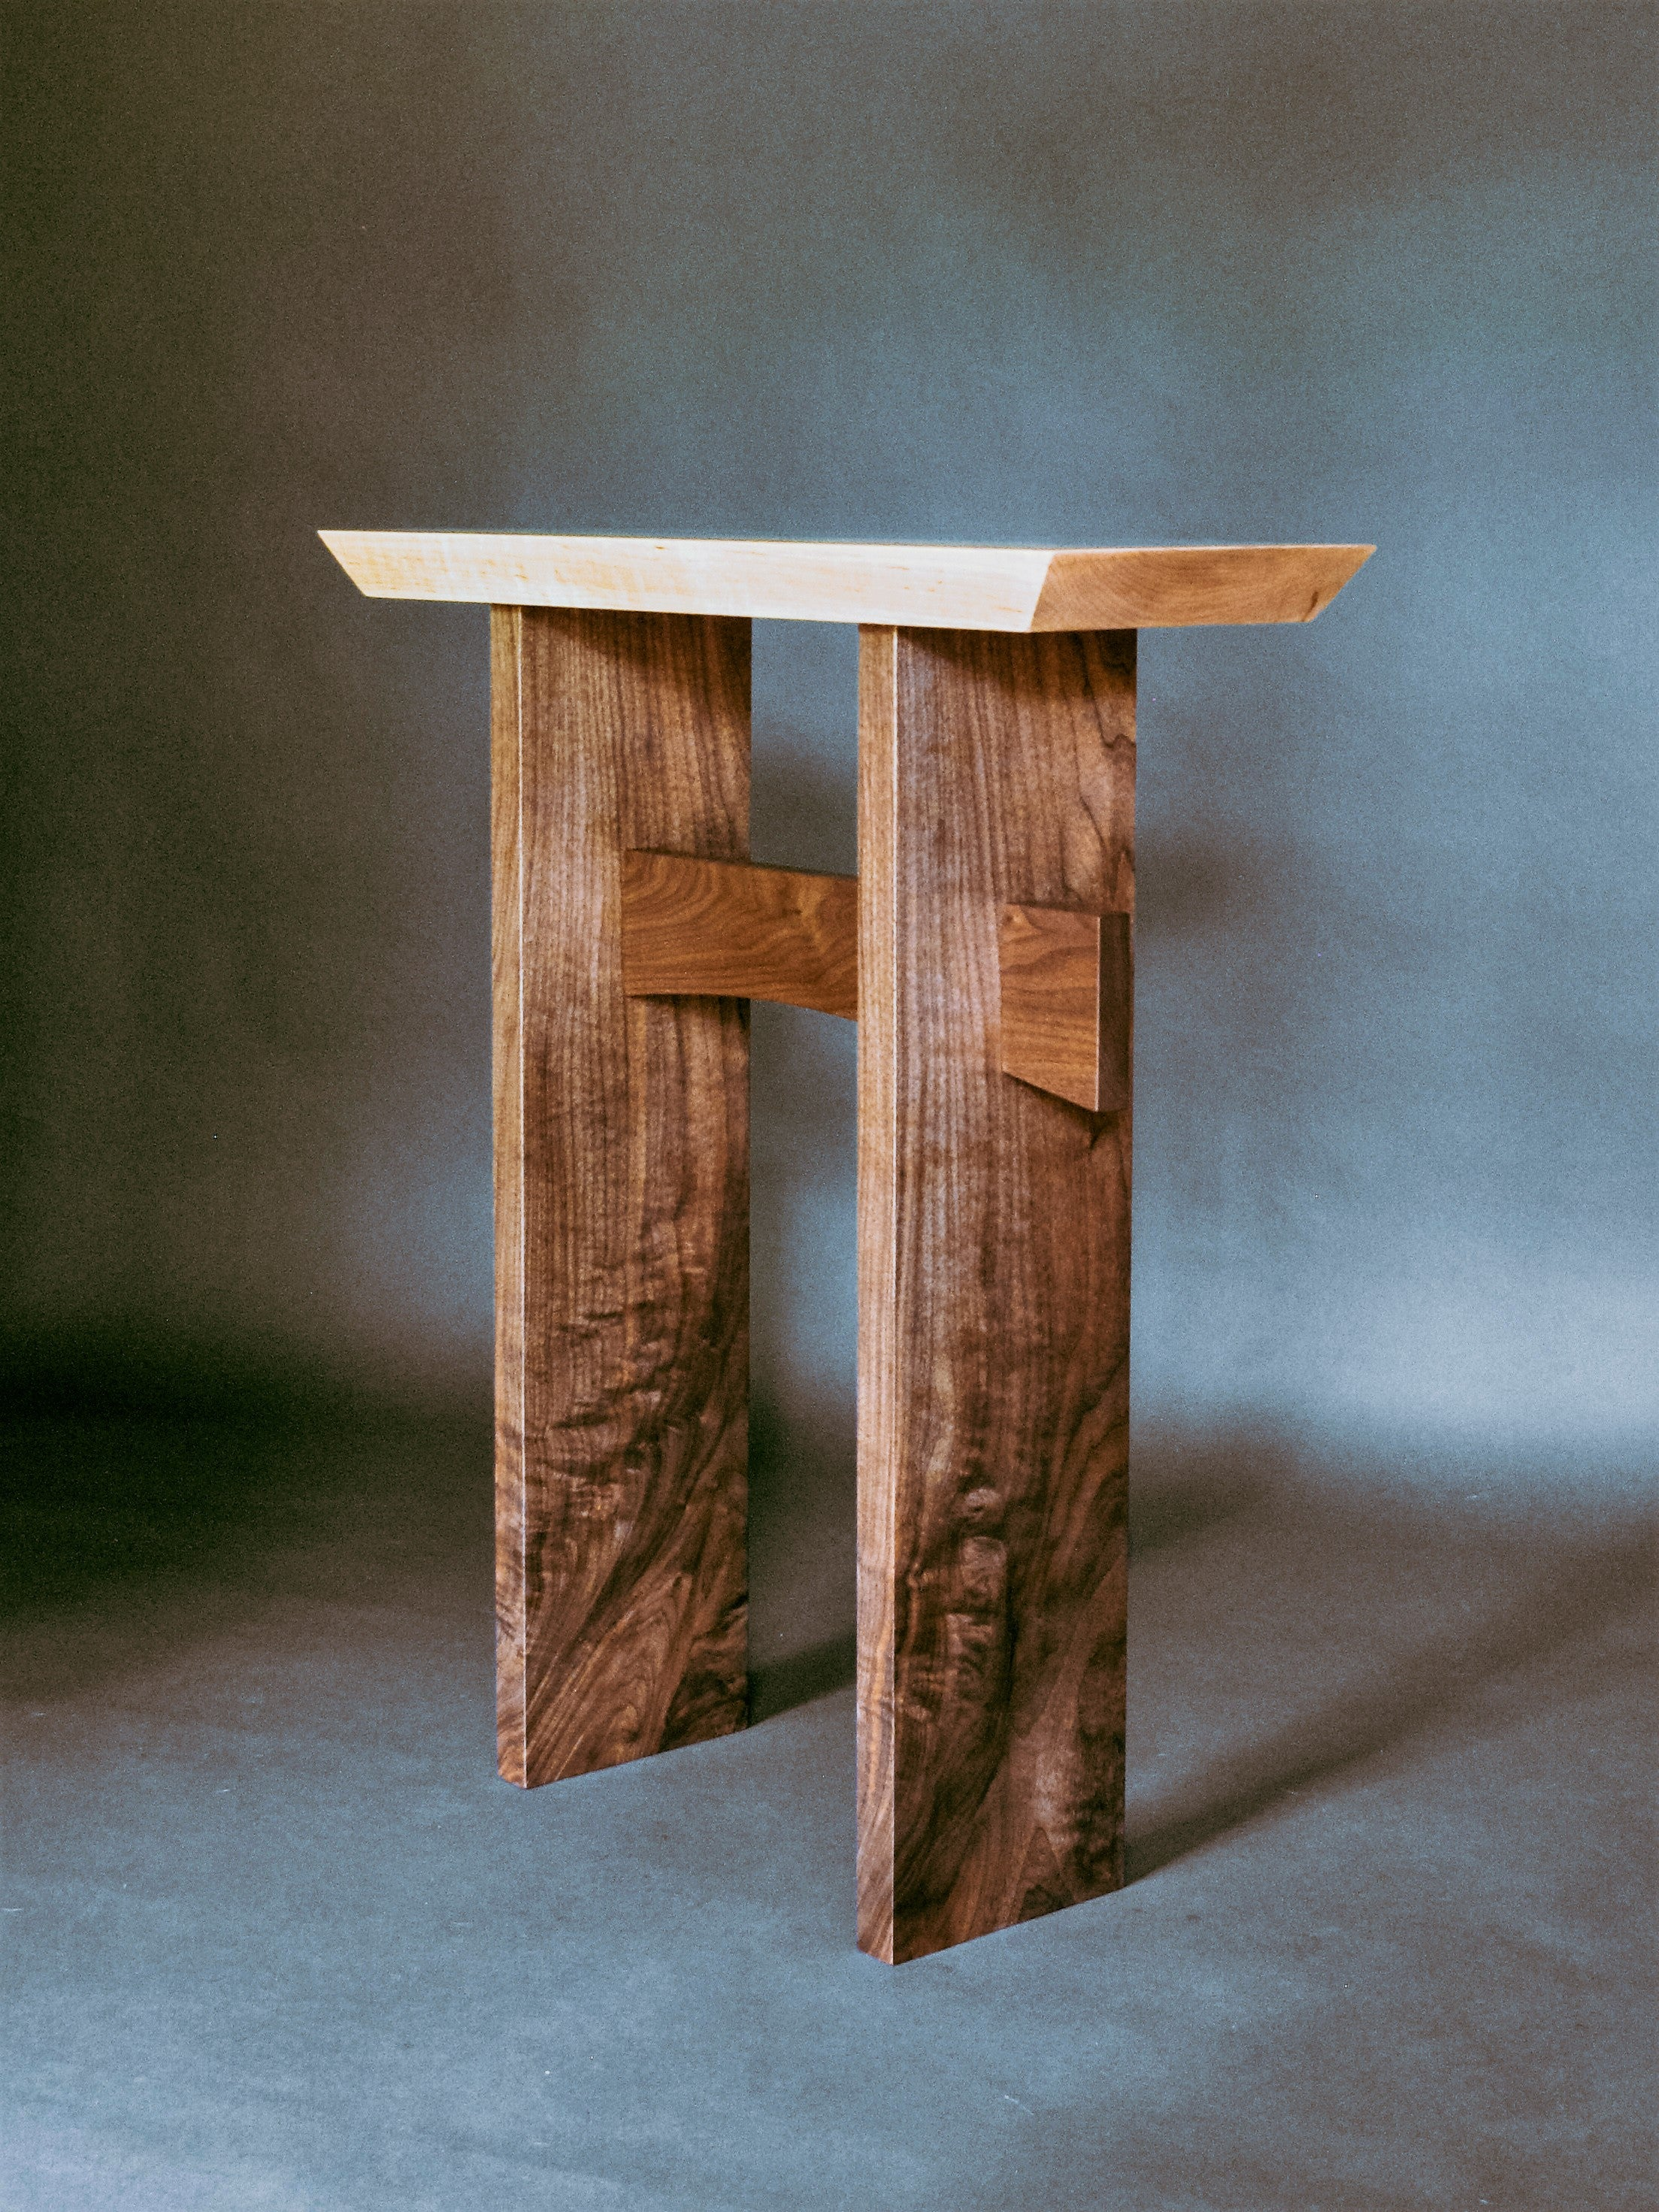 Statement Side Table in tiger maple and walnut - custom furniture orders welcome